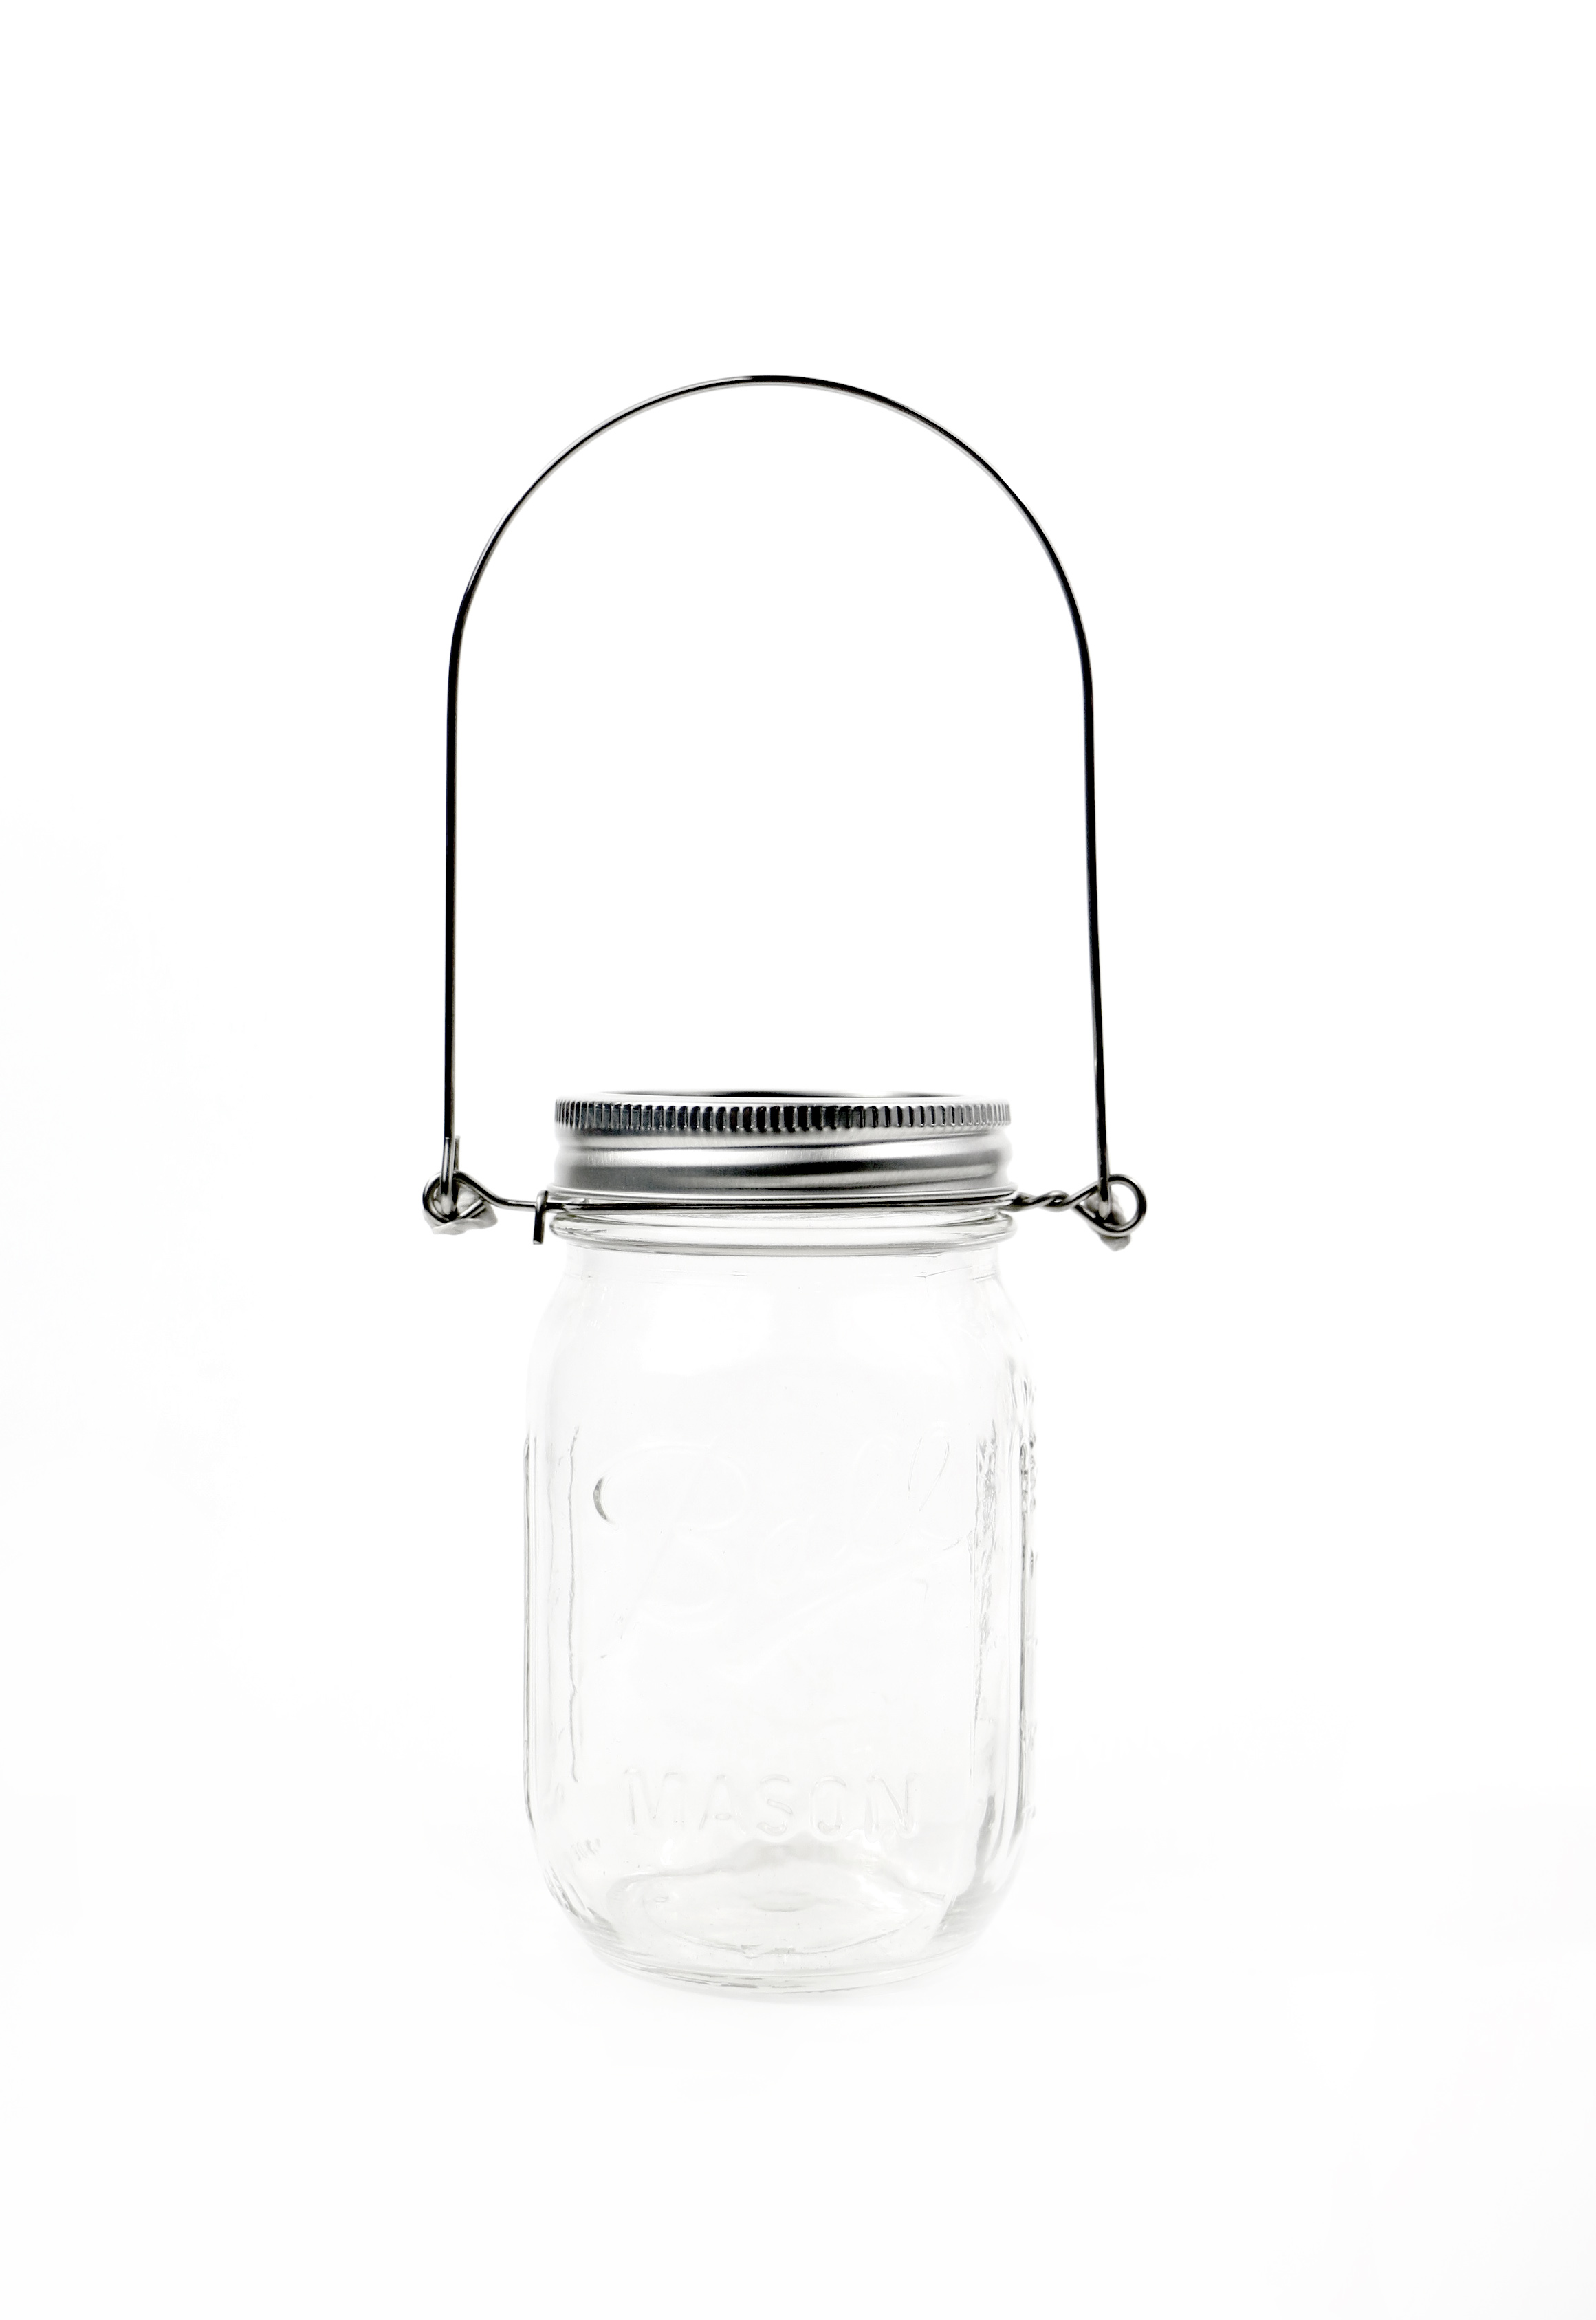 Ball Pint Mason Jar Wire Hanger